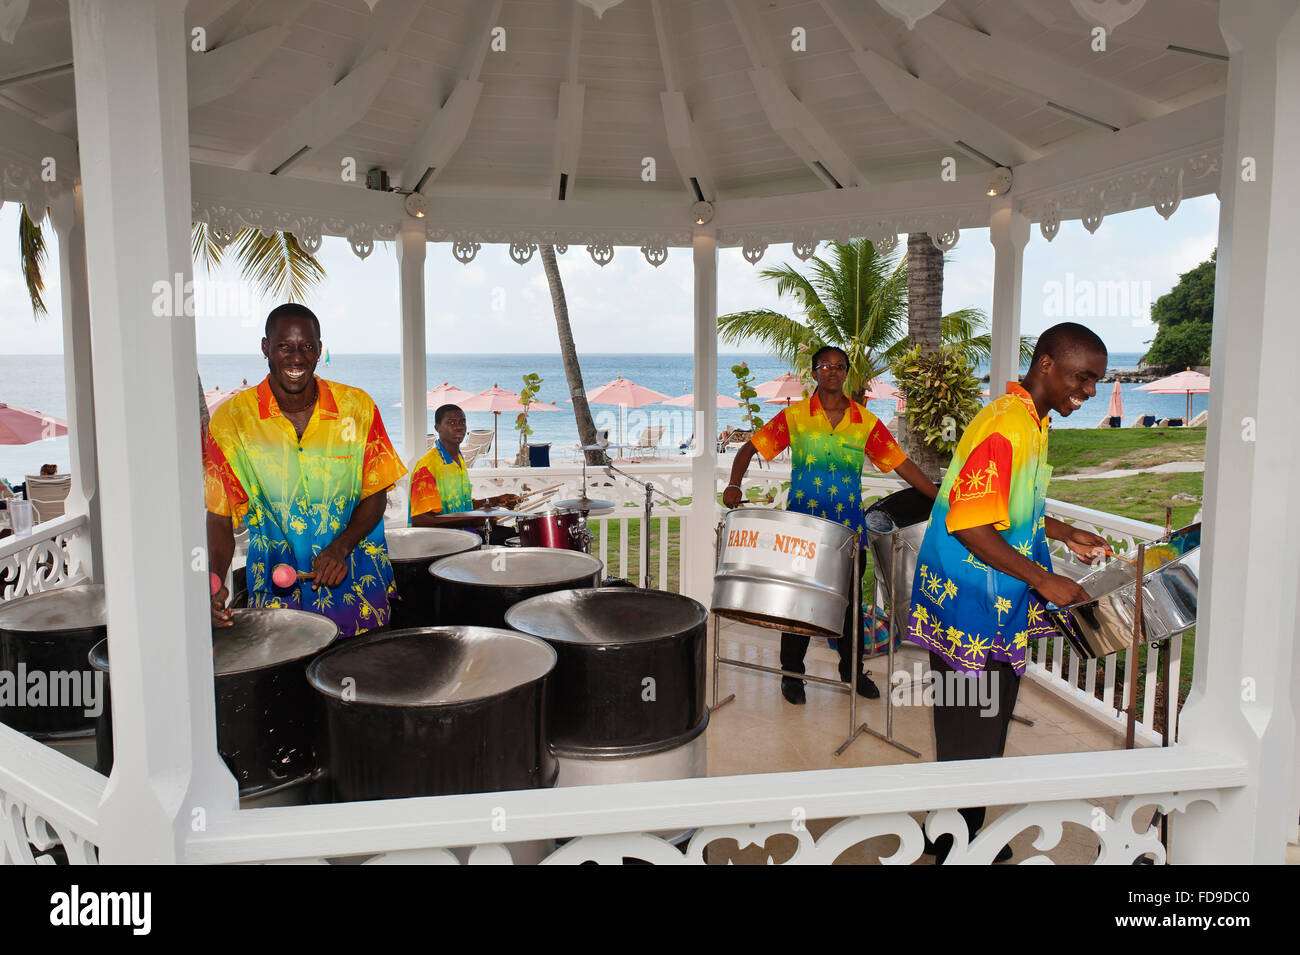 Steel drummers play in beach pagoda, St Lucia,  Lesser Antilles, Caribbean - Stock Image